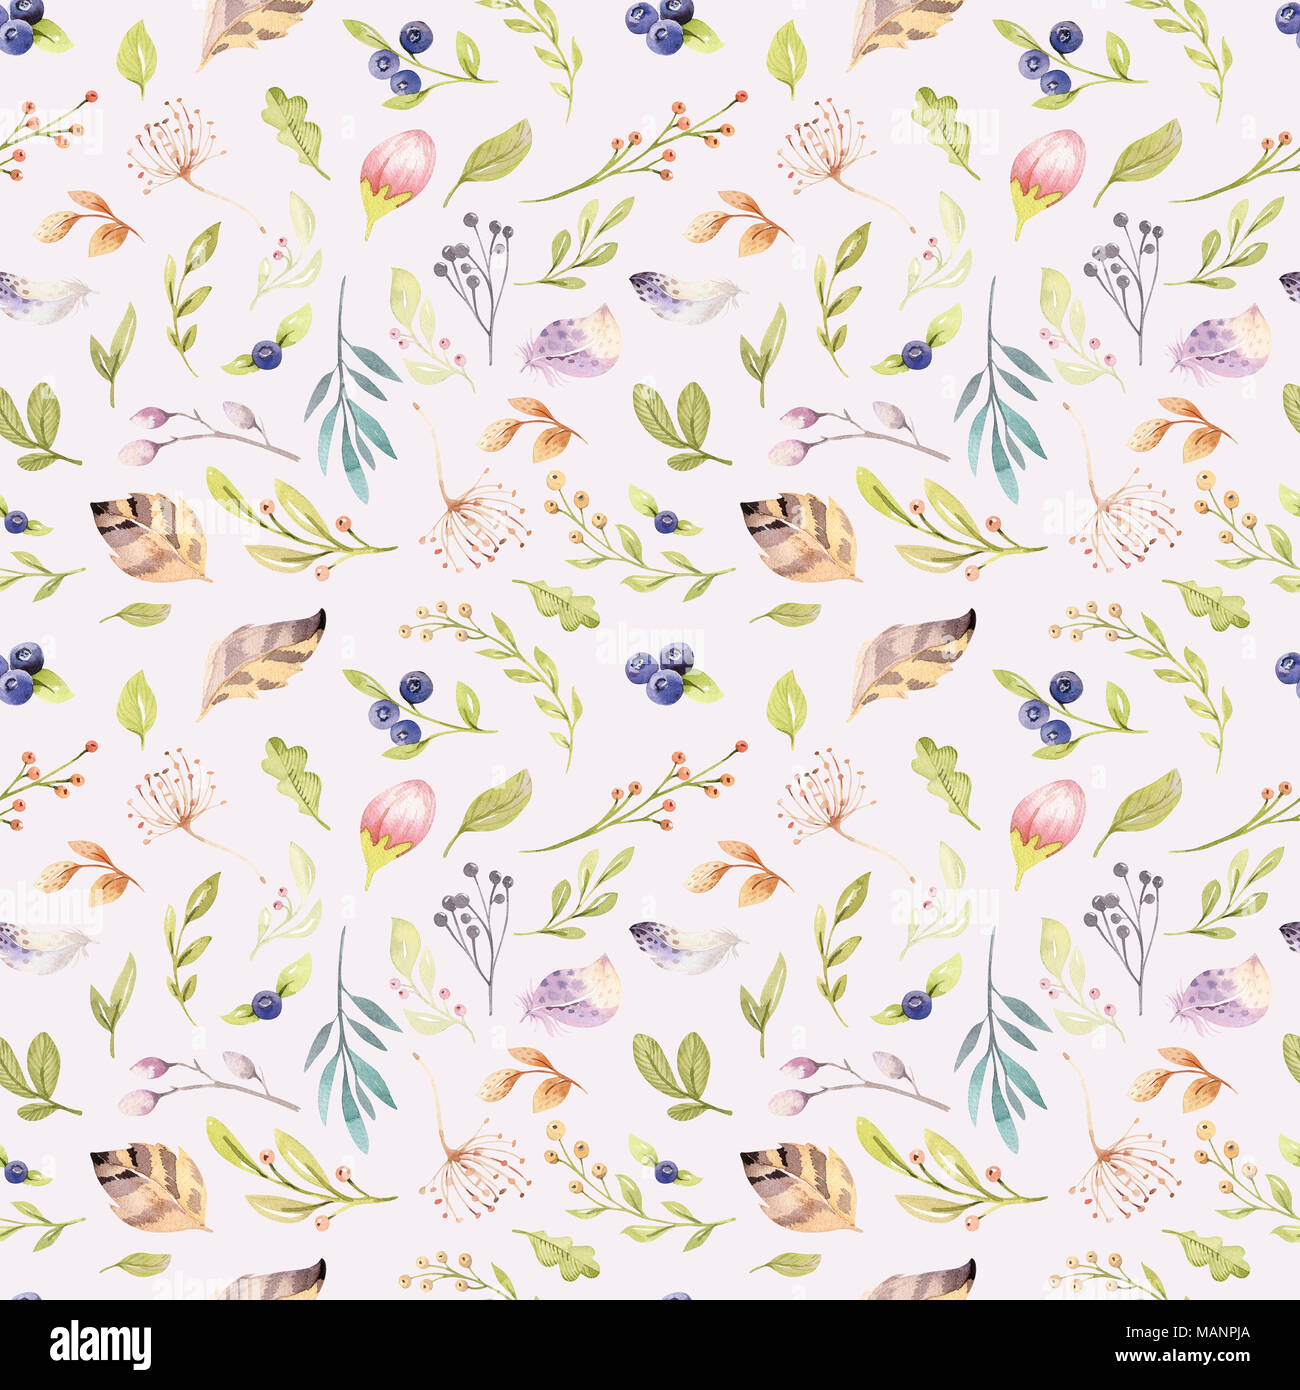 Watercolor Floral Bloom Seamless Pattern In Pastel Colors Background With Bloossom Flower And Leaves Boho Illustration